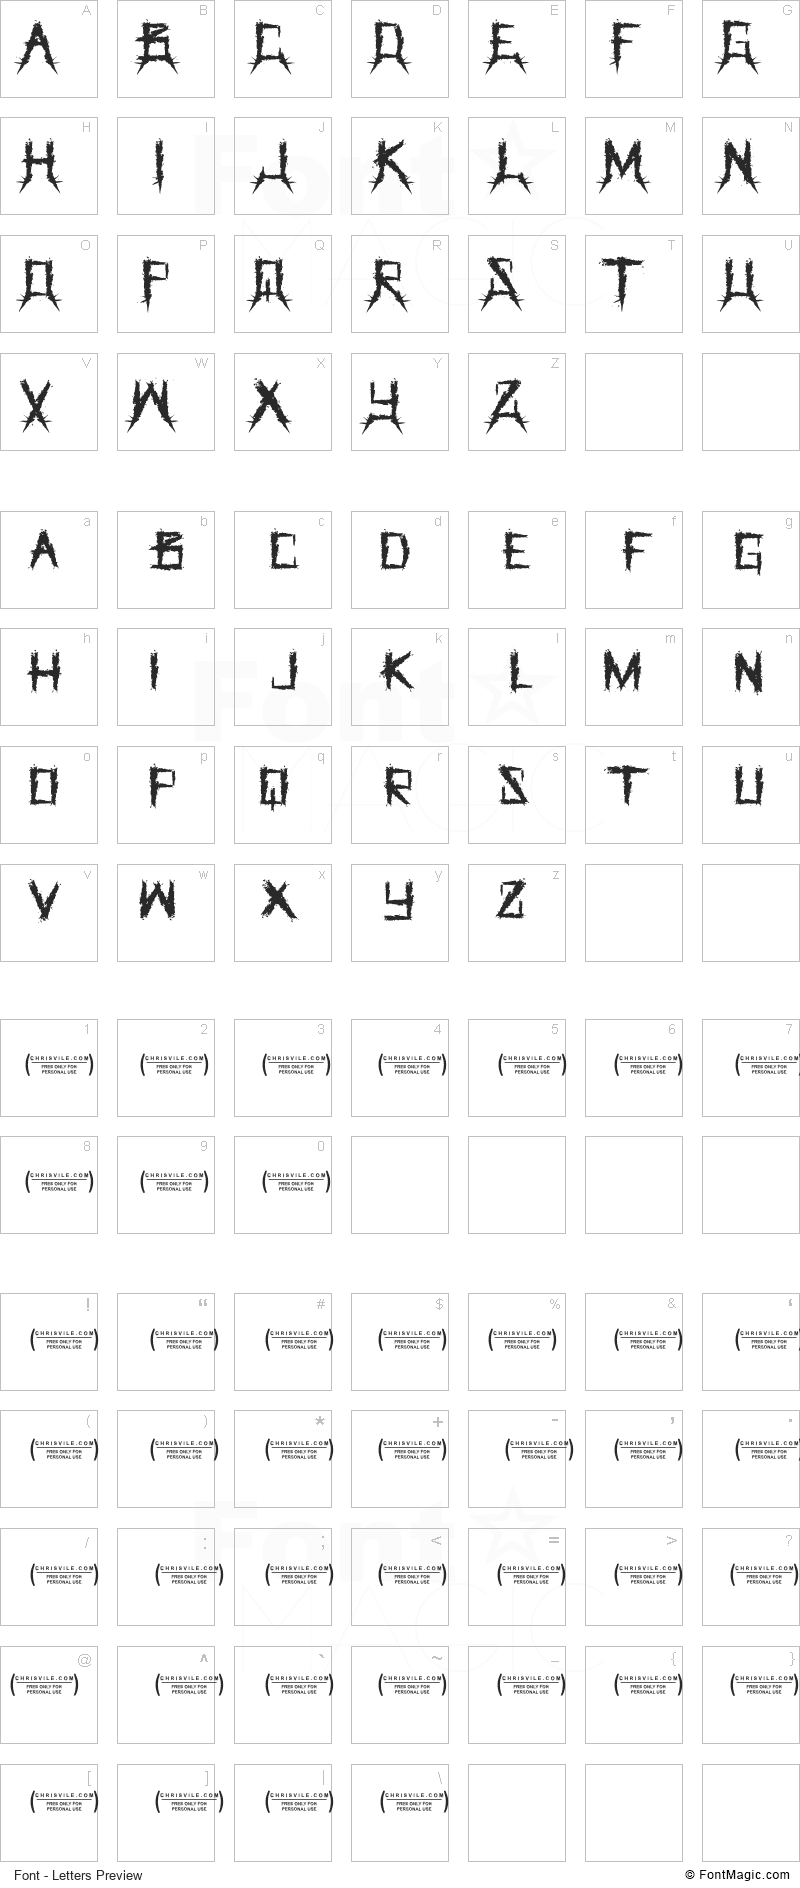 The Grinder Font - All Latters Preview Chart